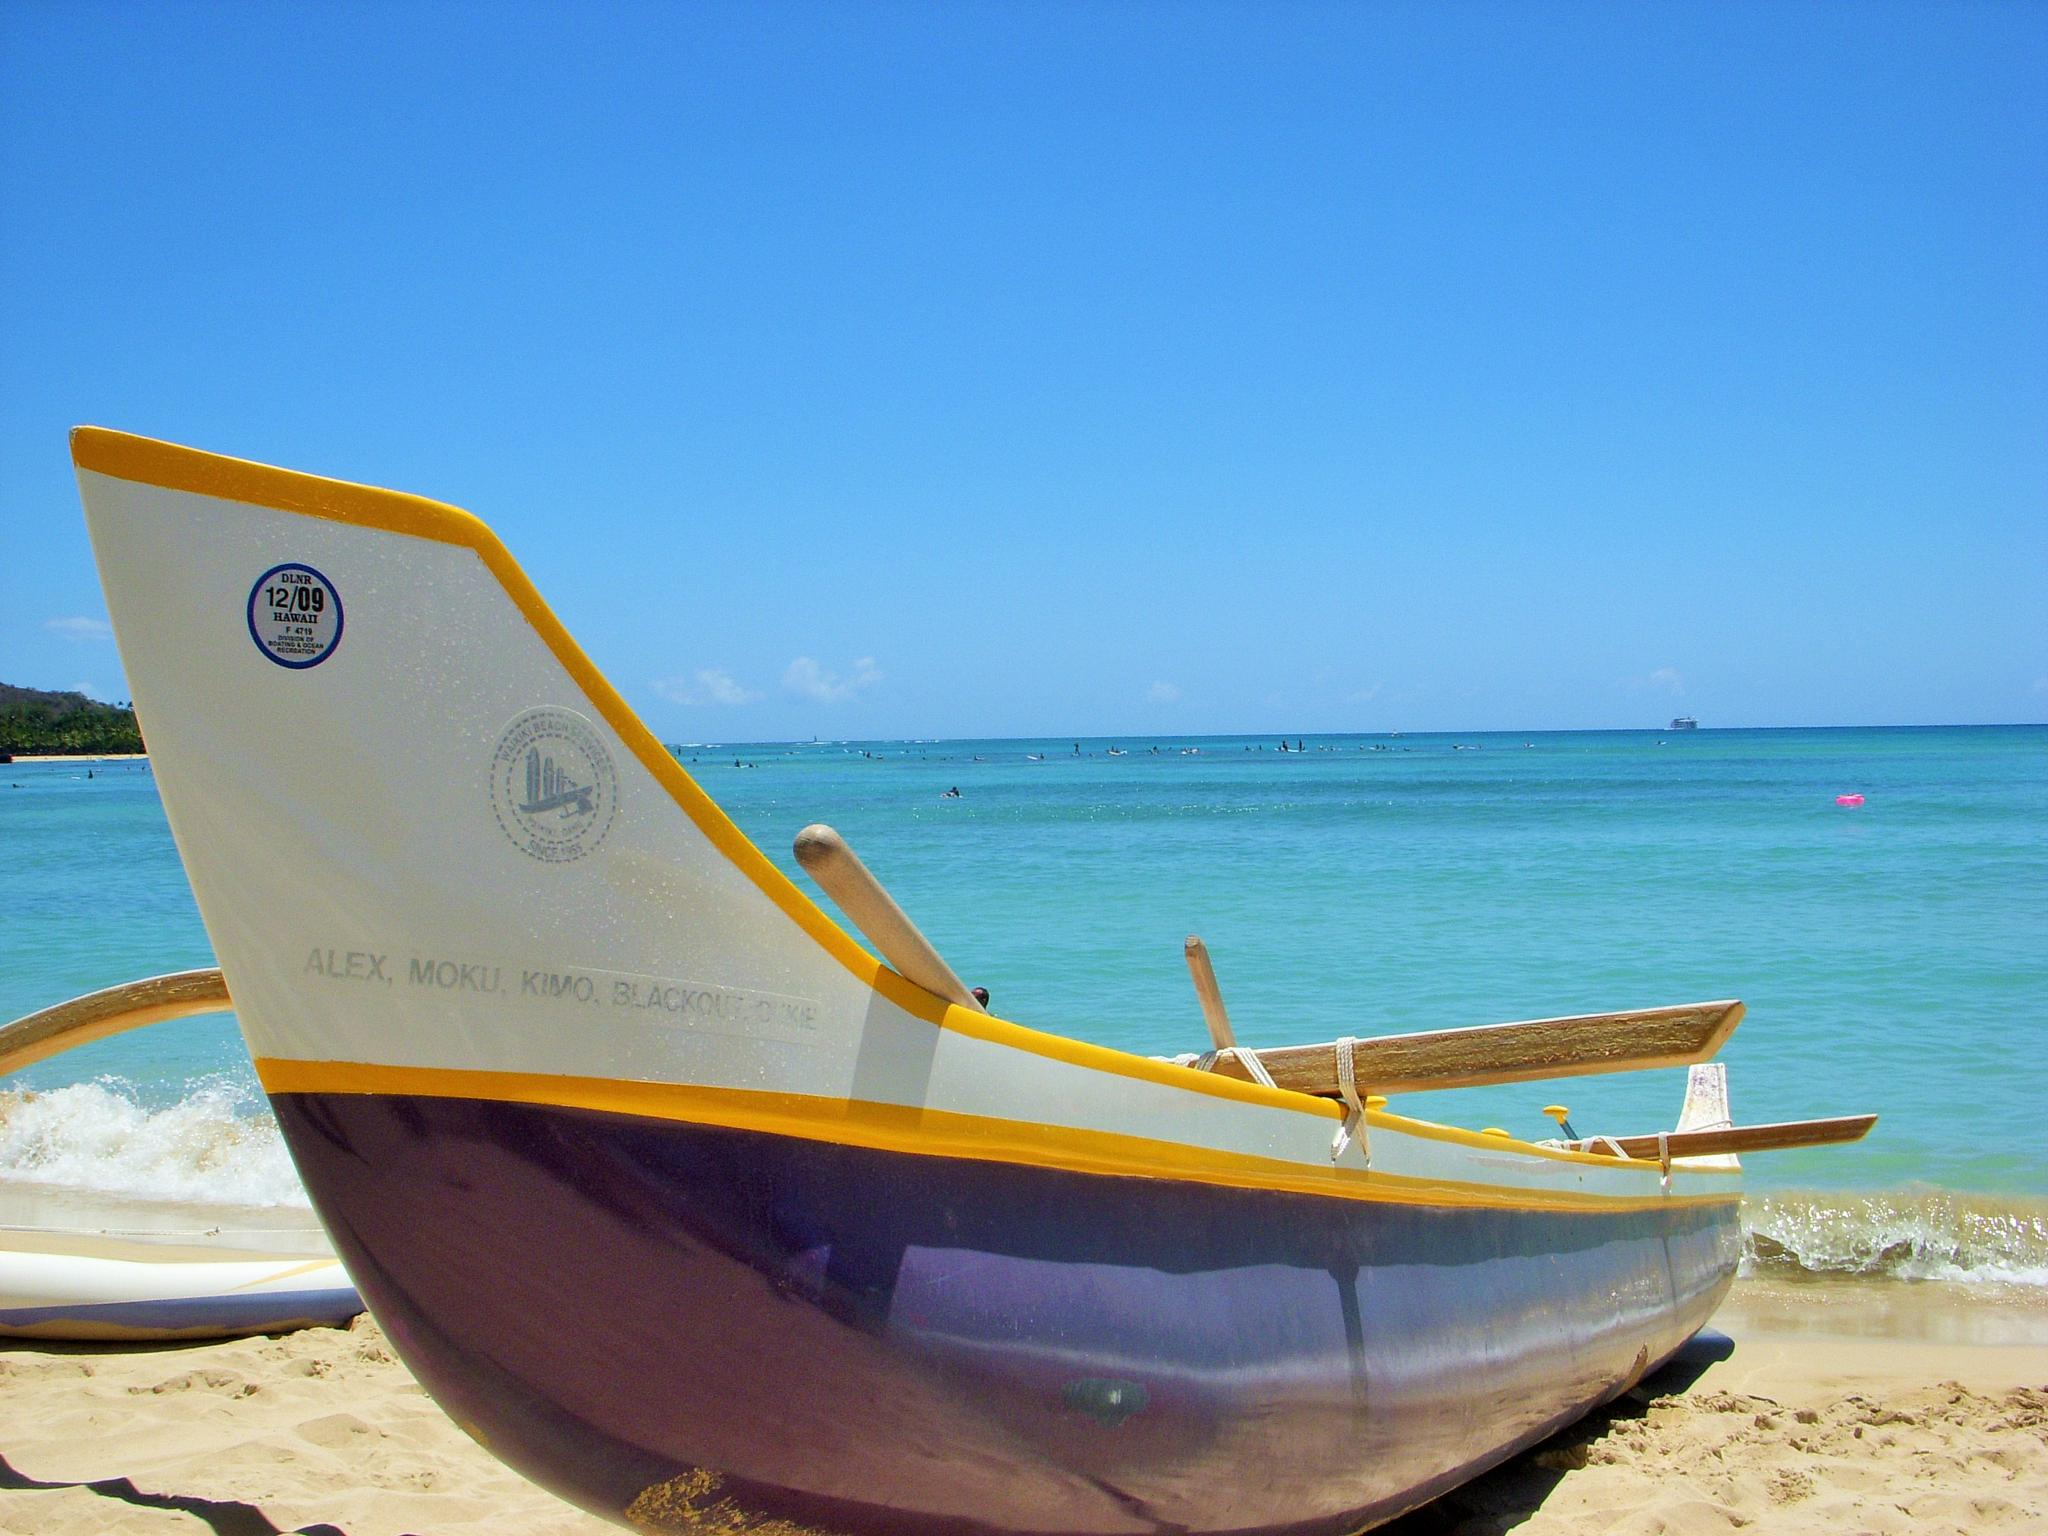 Boat on Beach by Laura J. Vazquez